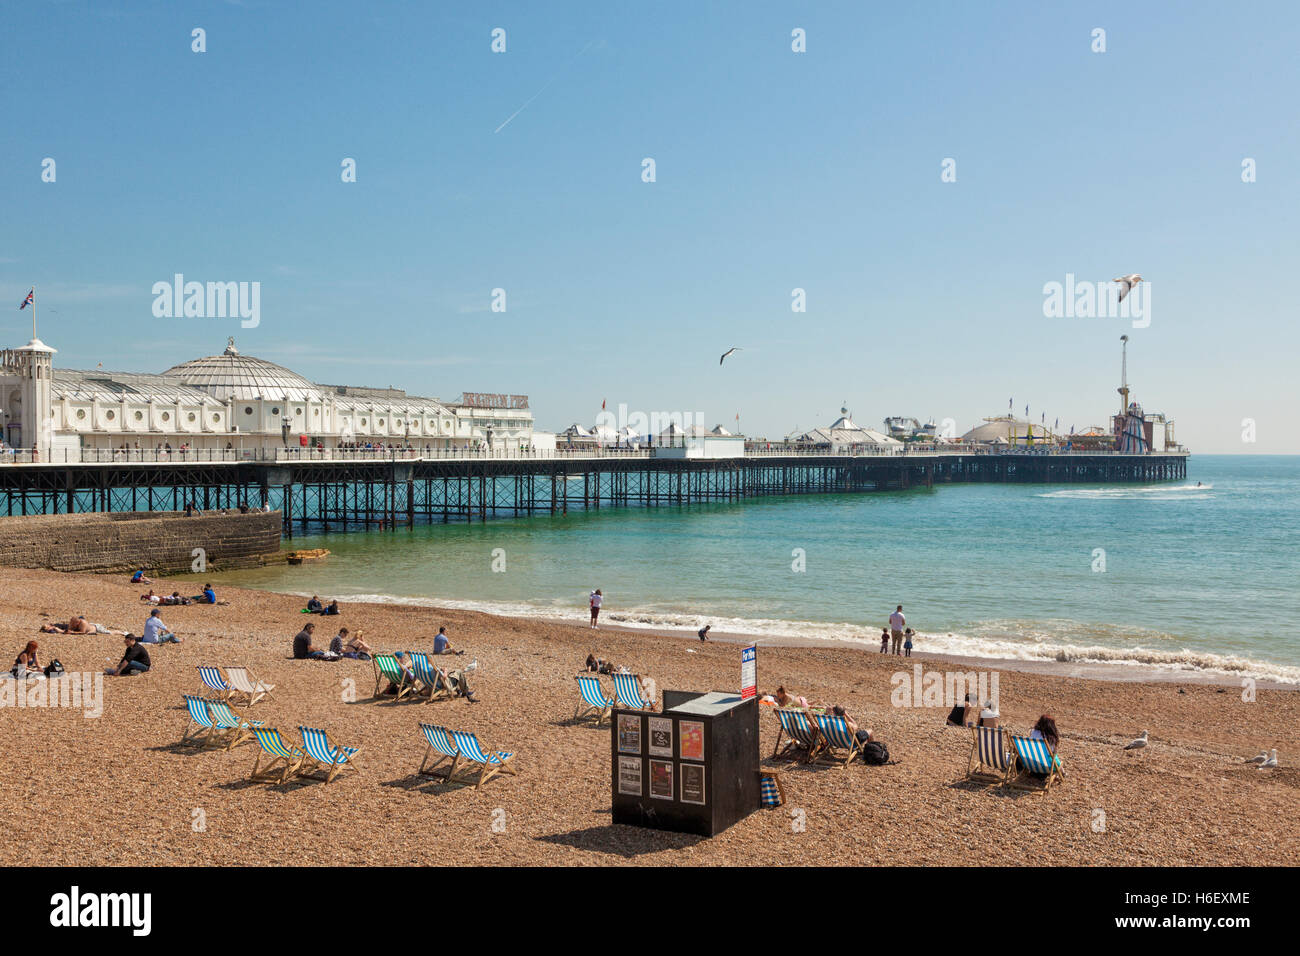 Pier of Brighton, people on the beach in front - Stock Image